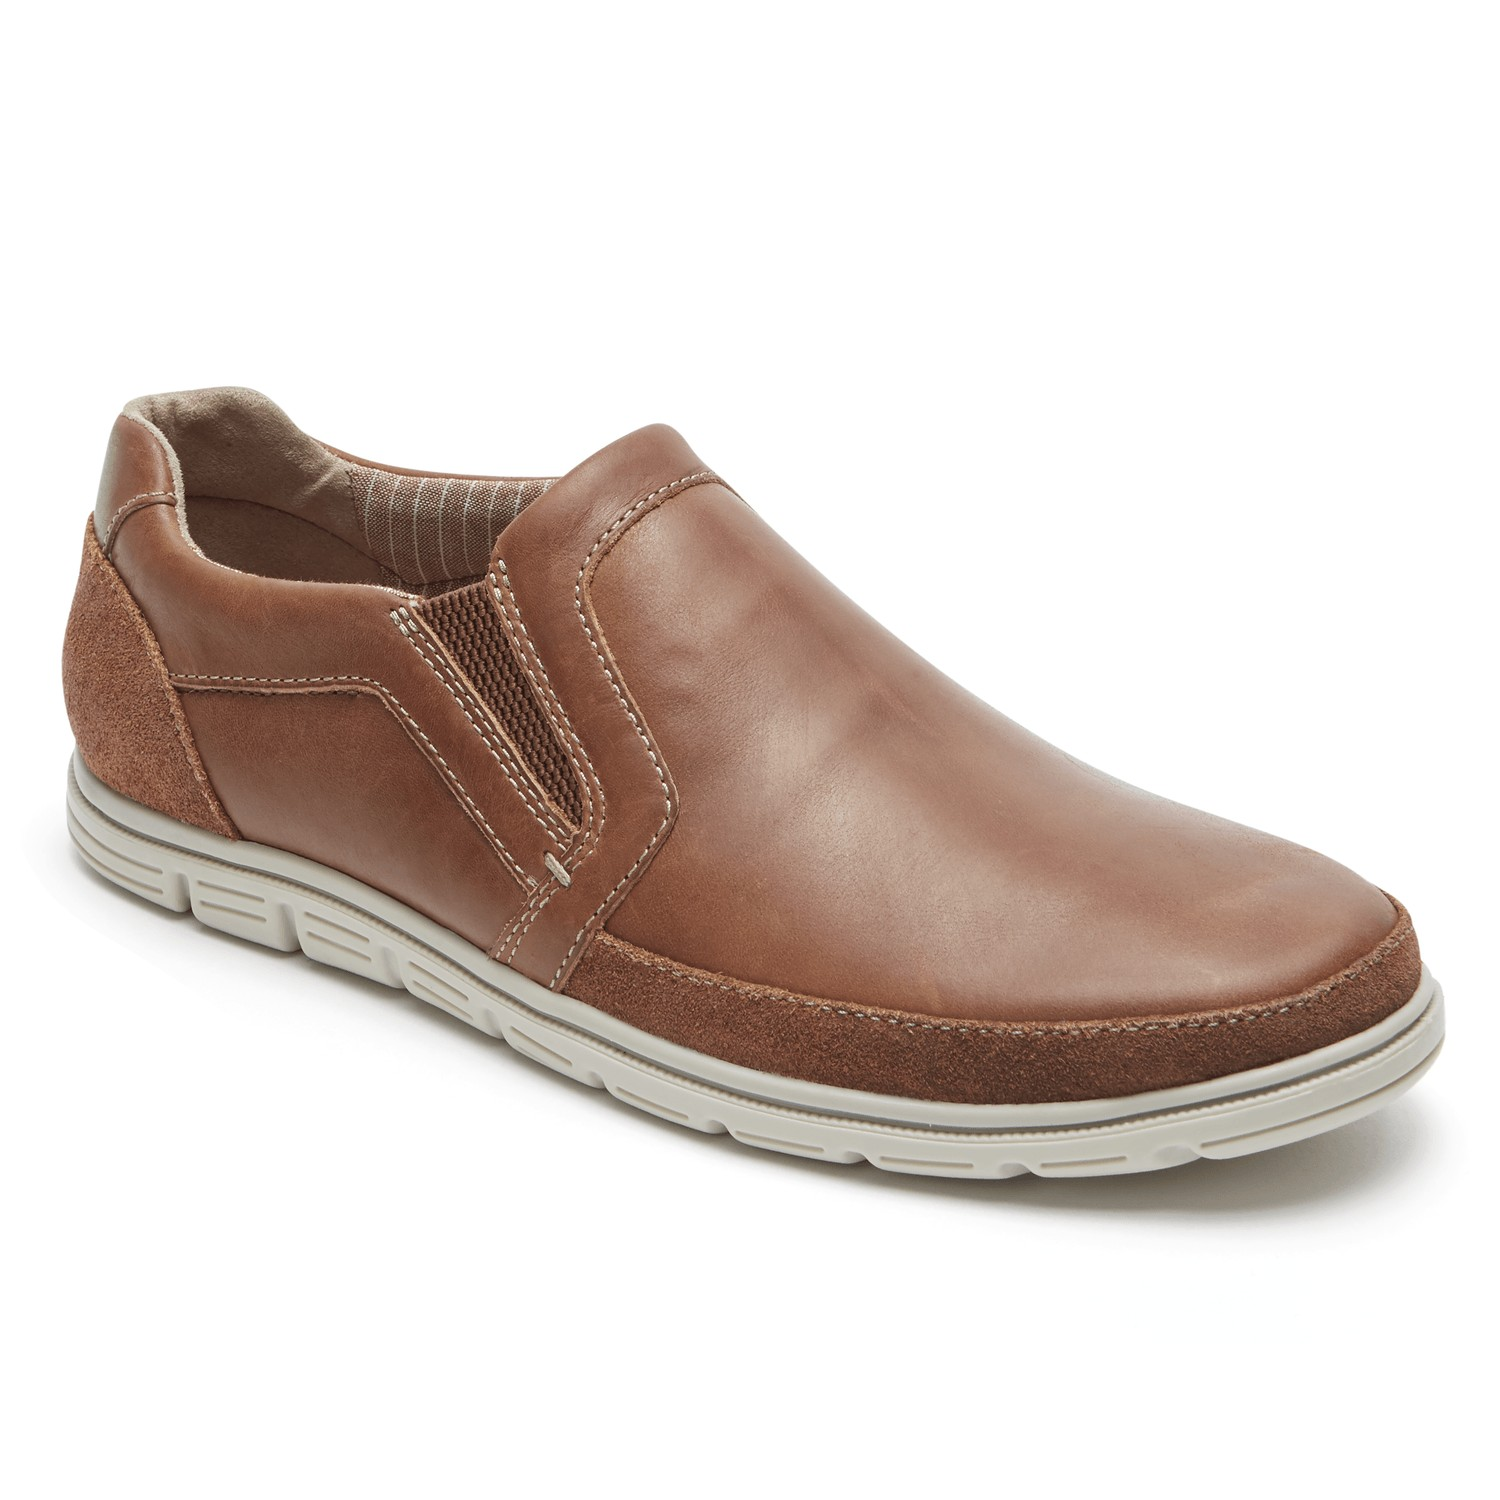 895a454a4 Rockport Bowman Double Gore Men s Slip-On - Free Shipping